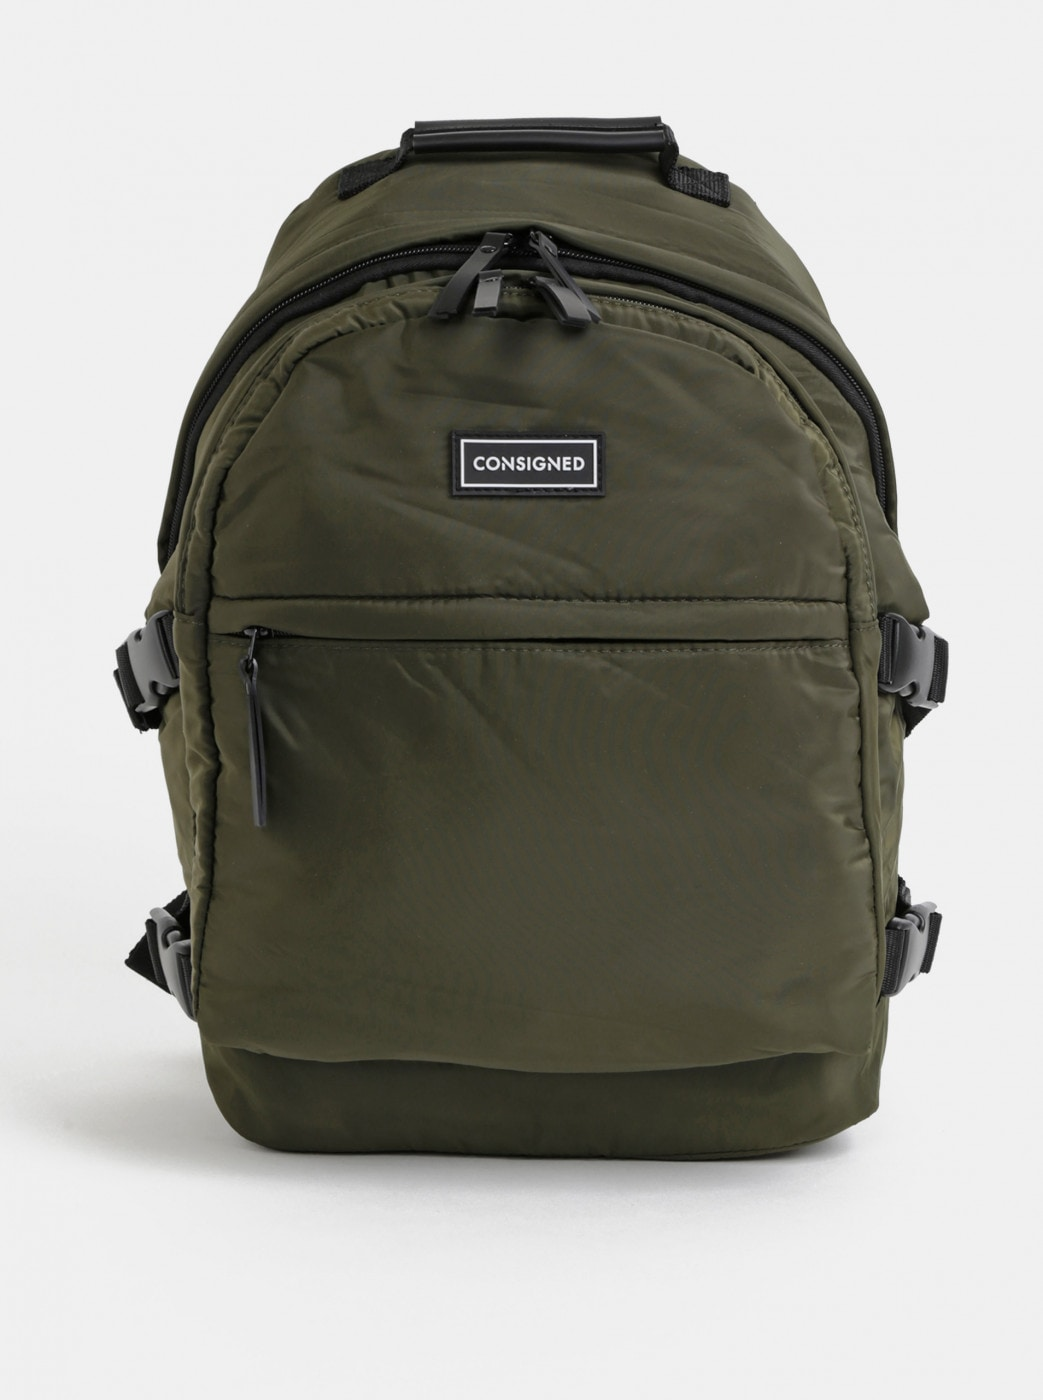 Green Backpack Consigned Barton